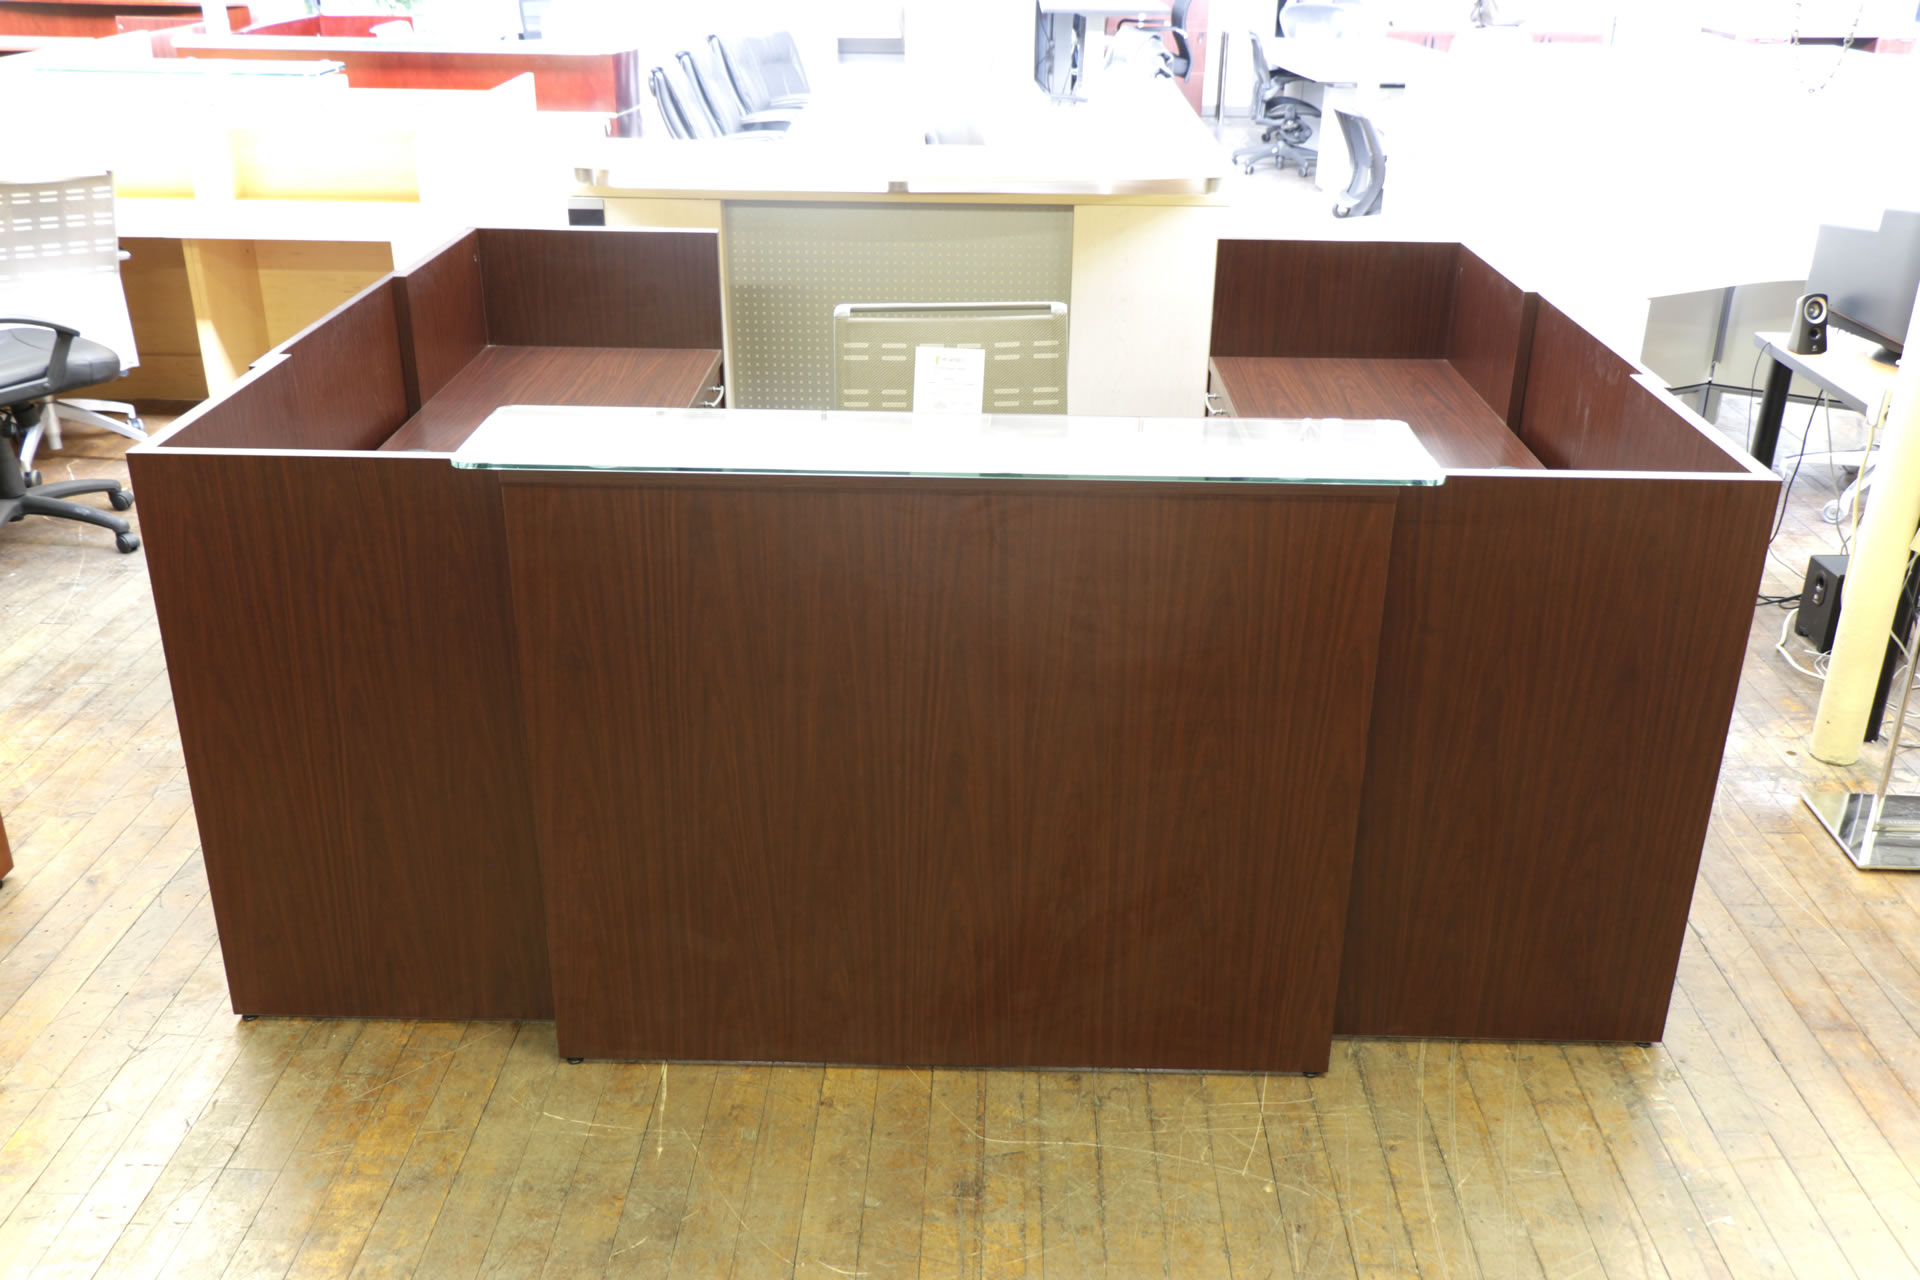 peartreeofficefurniture_peartreeofficefurniture_mg_5323.jpg